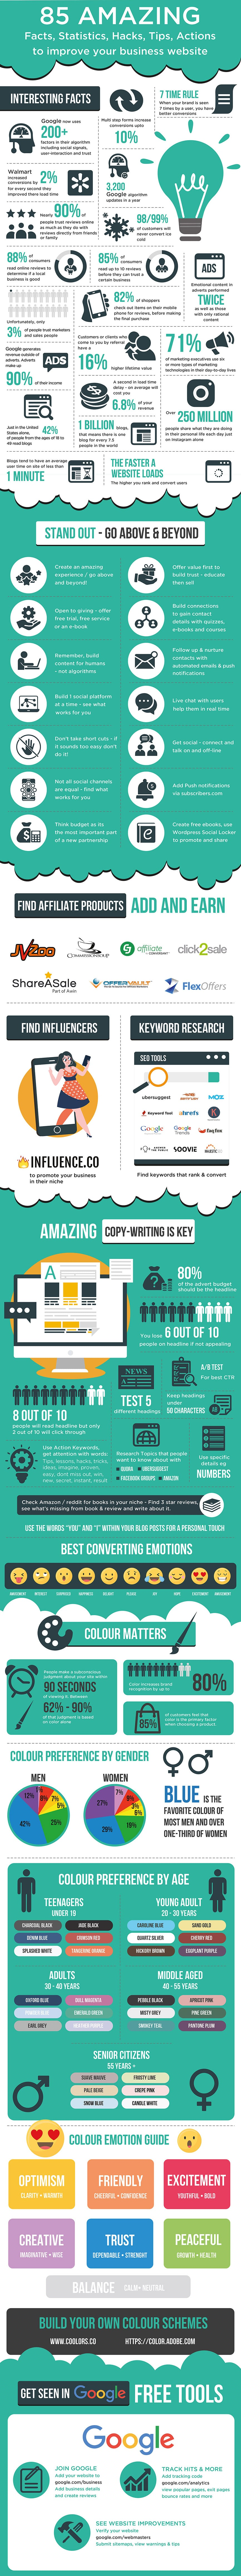 85 Amazing facts to improve your website 1